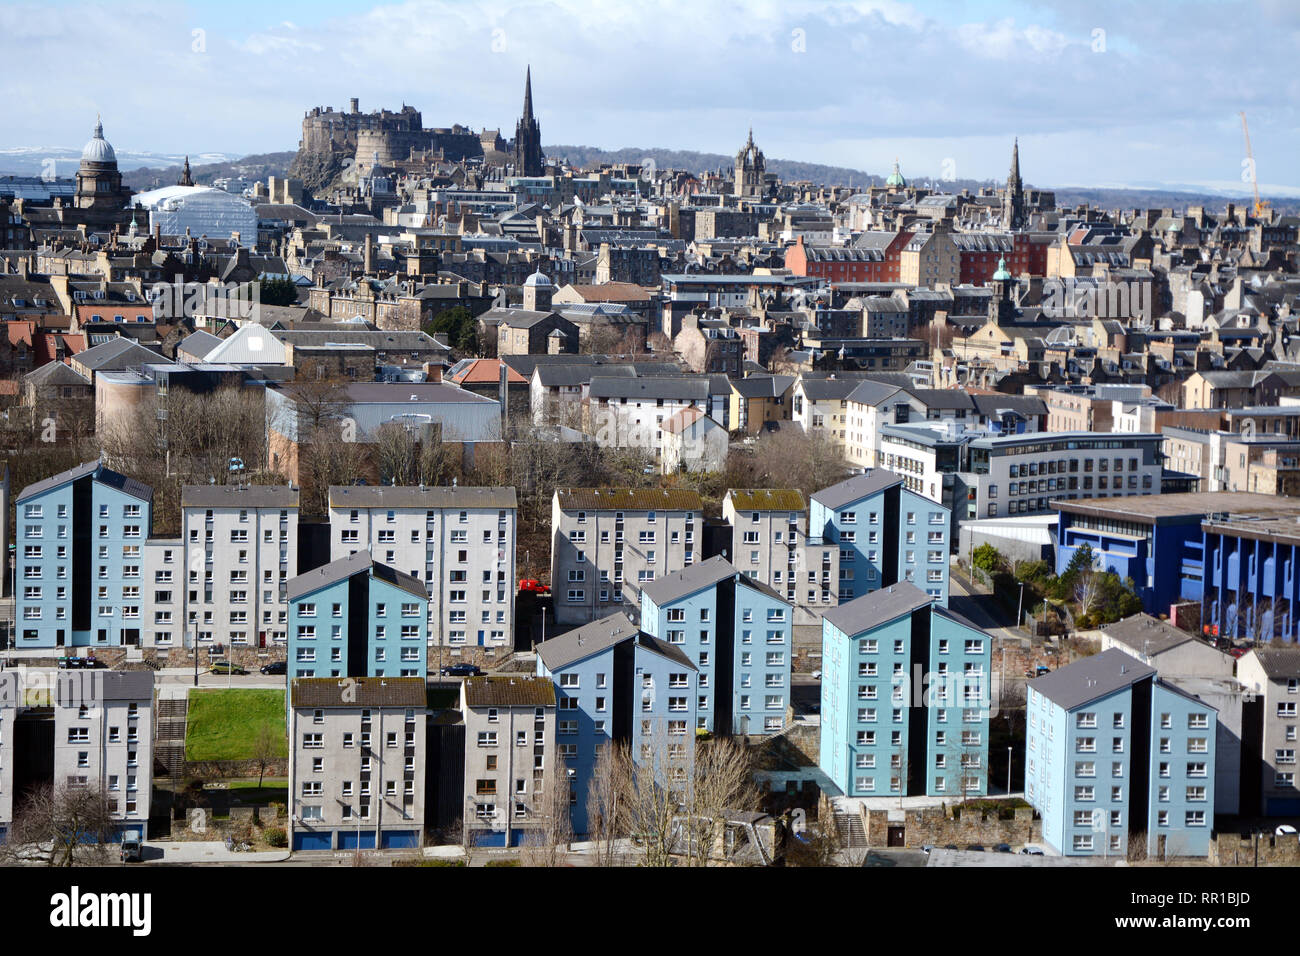 A cityscape view of the medieval old of downtown Edinburgh, and its newer outlying districts, from Arthur's Seat, Scotland, United Kingdom. - Stock Image